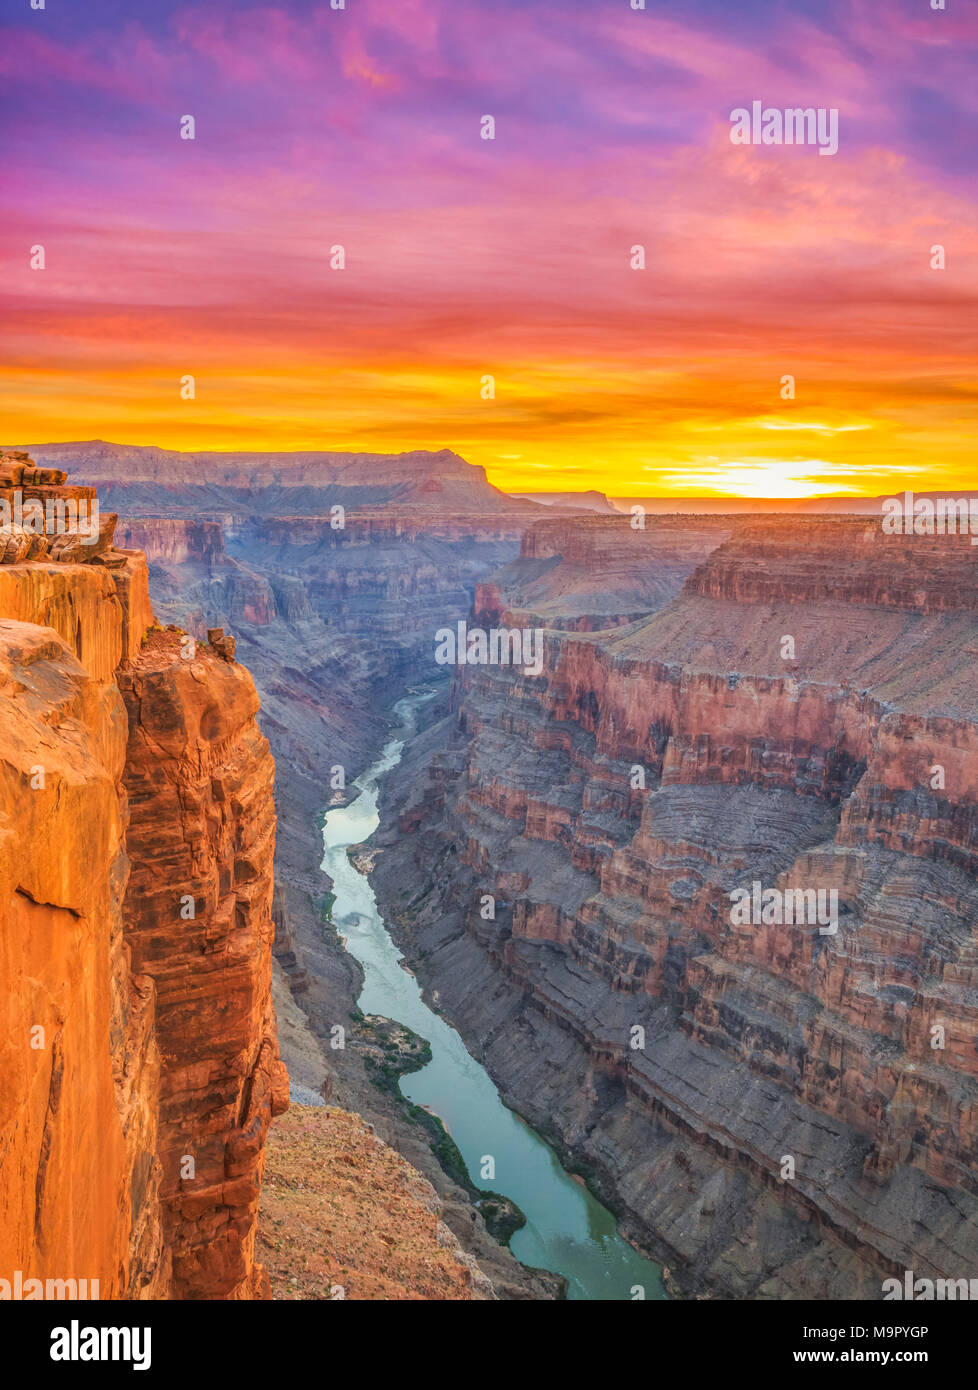 sunrise over the colorado river at toroweap overlook in grand canyon national park, arizona - Stock Image